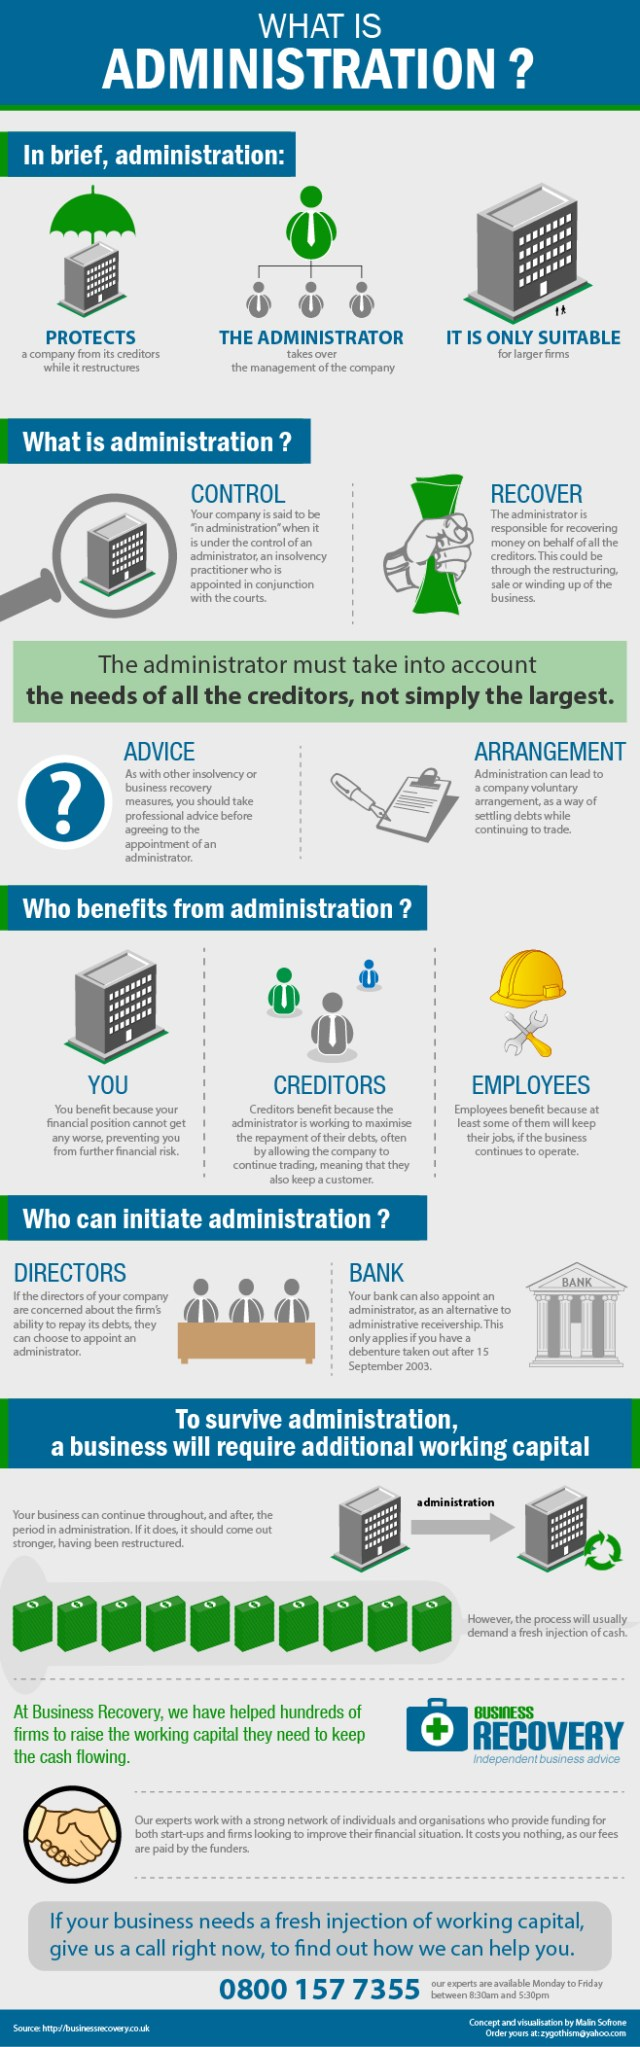 info1 - How to Master the Skills of Successful Business Administration